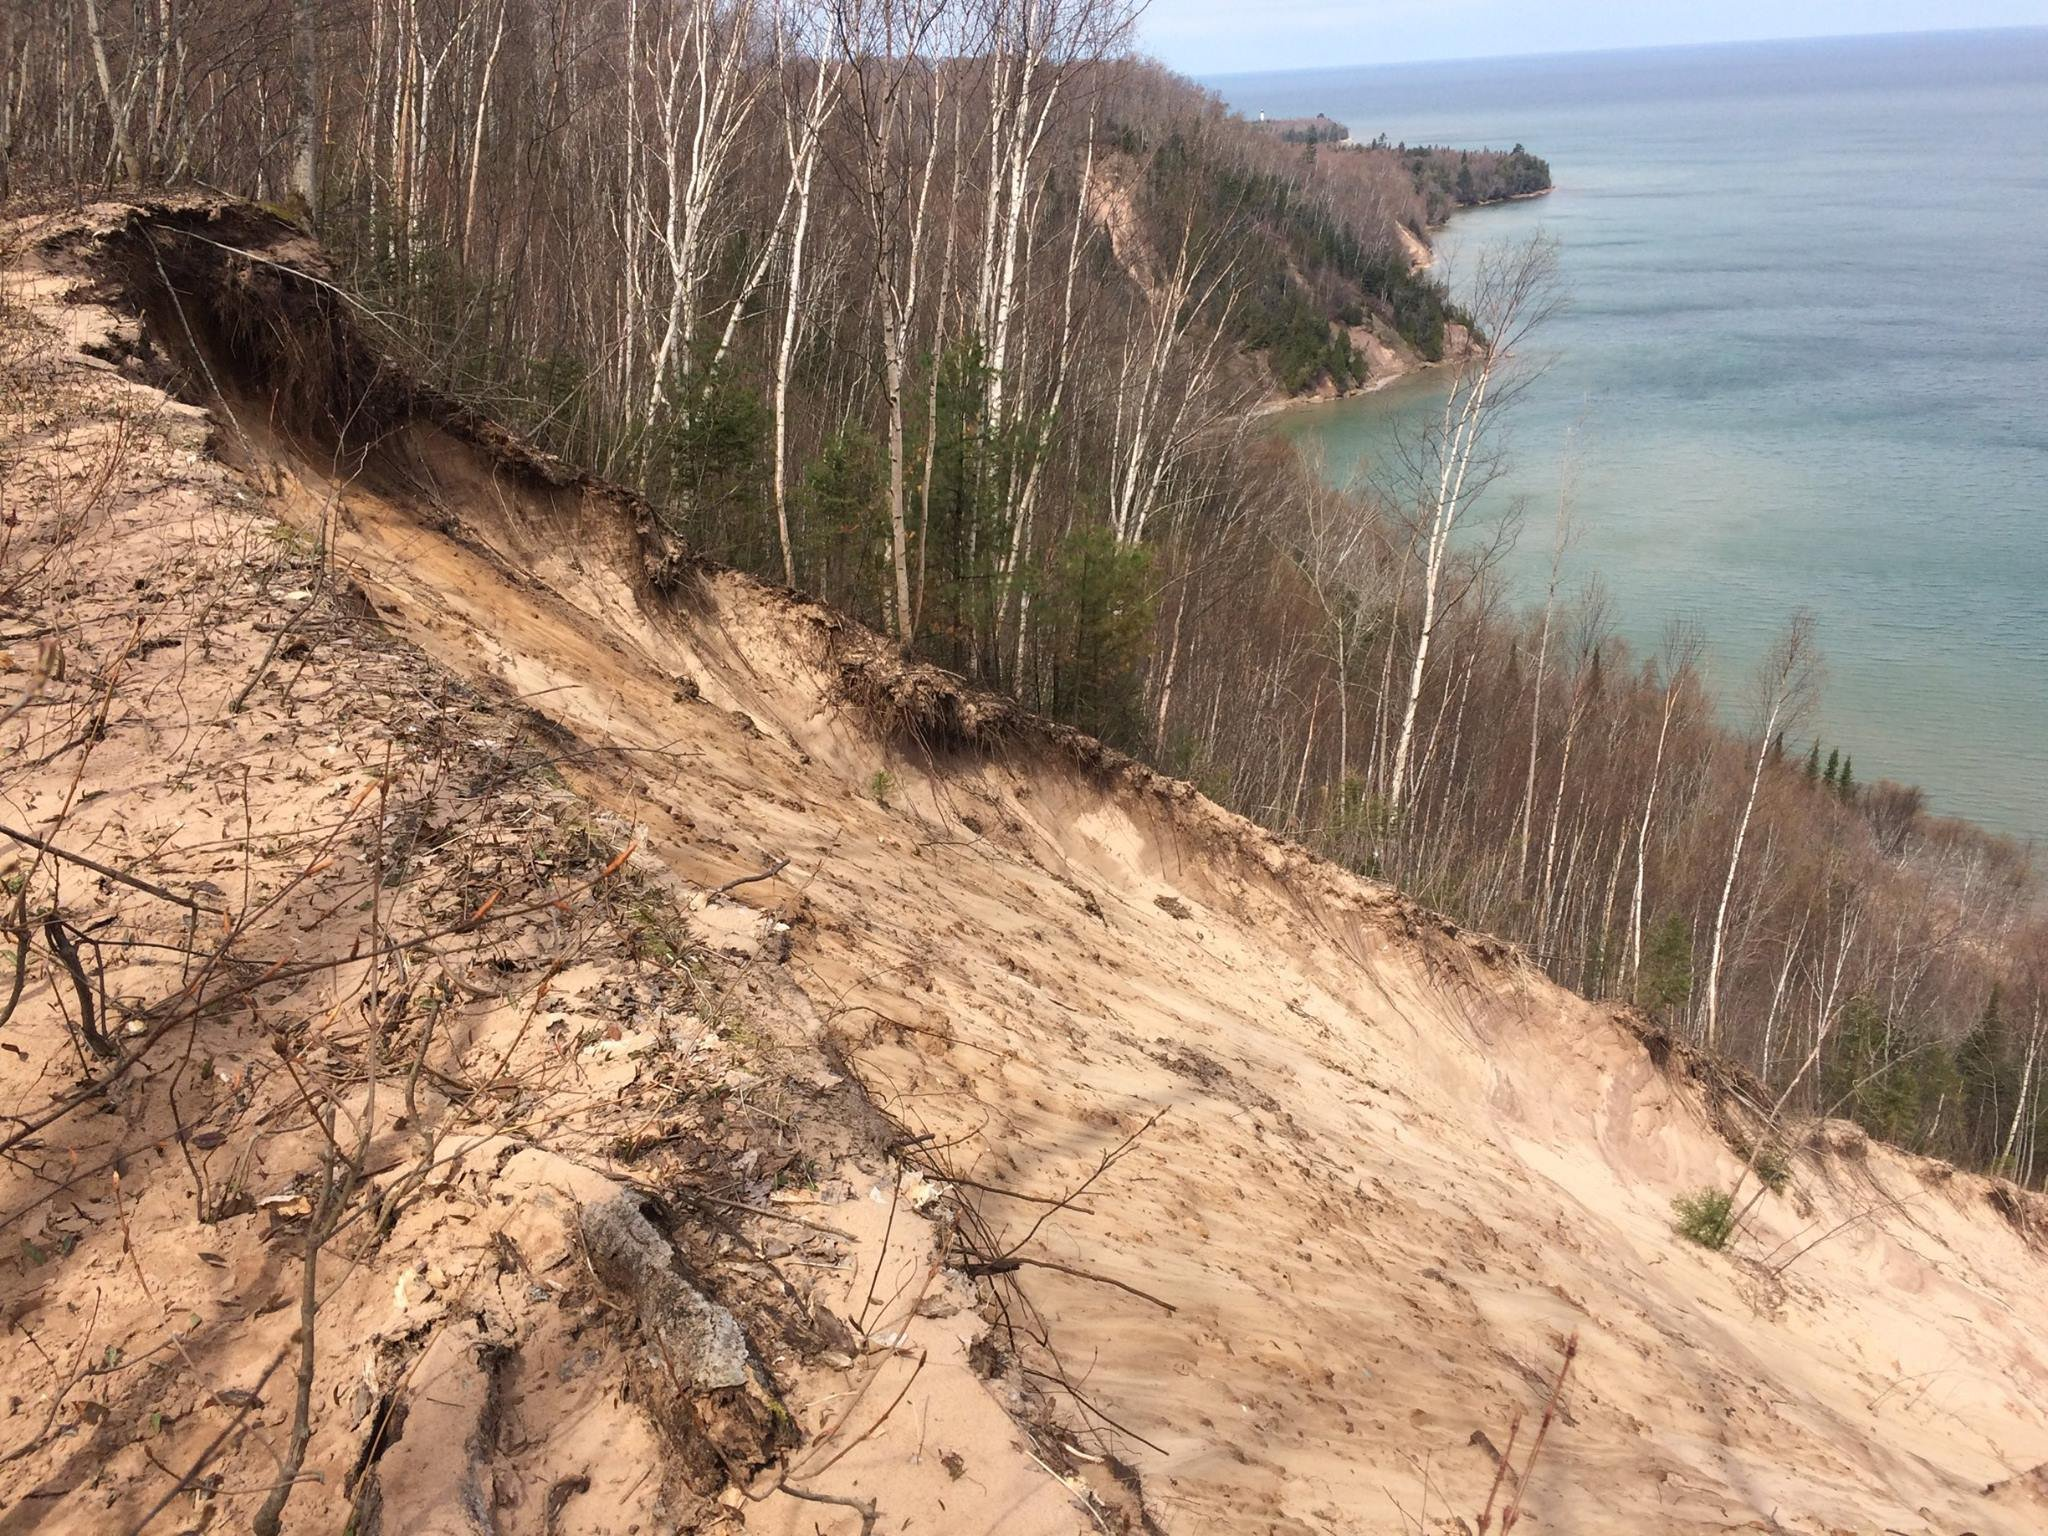 Source: Pictured Rocks National Lakeshore